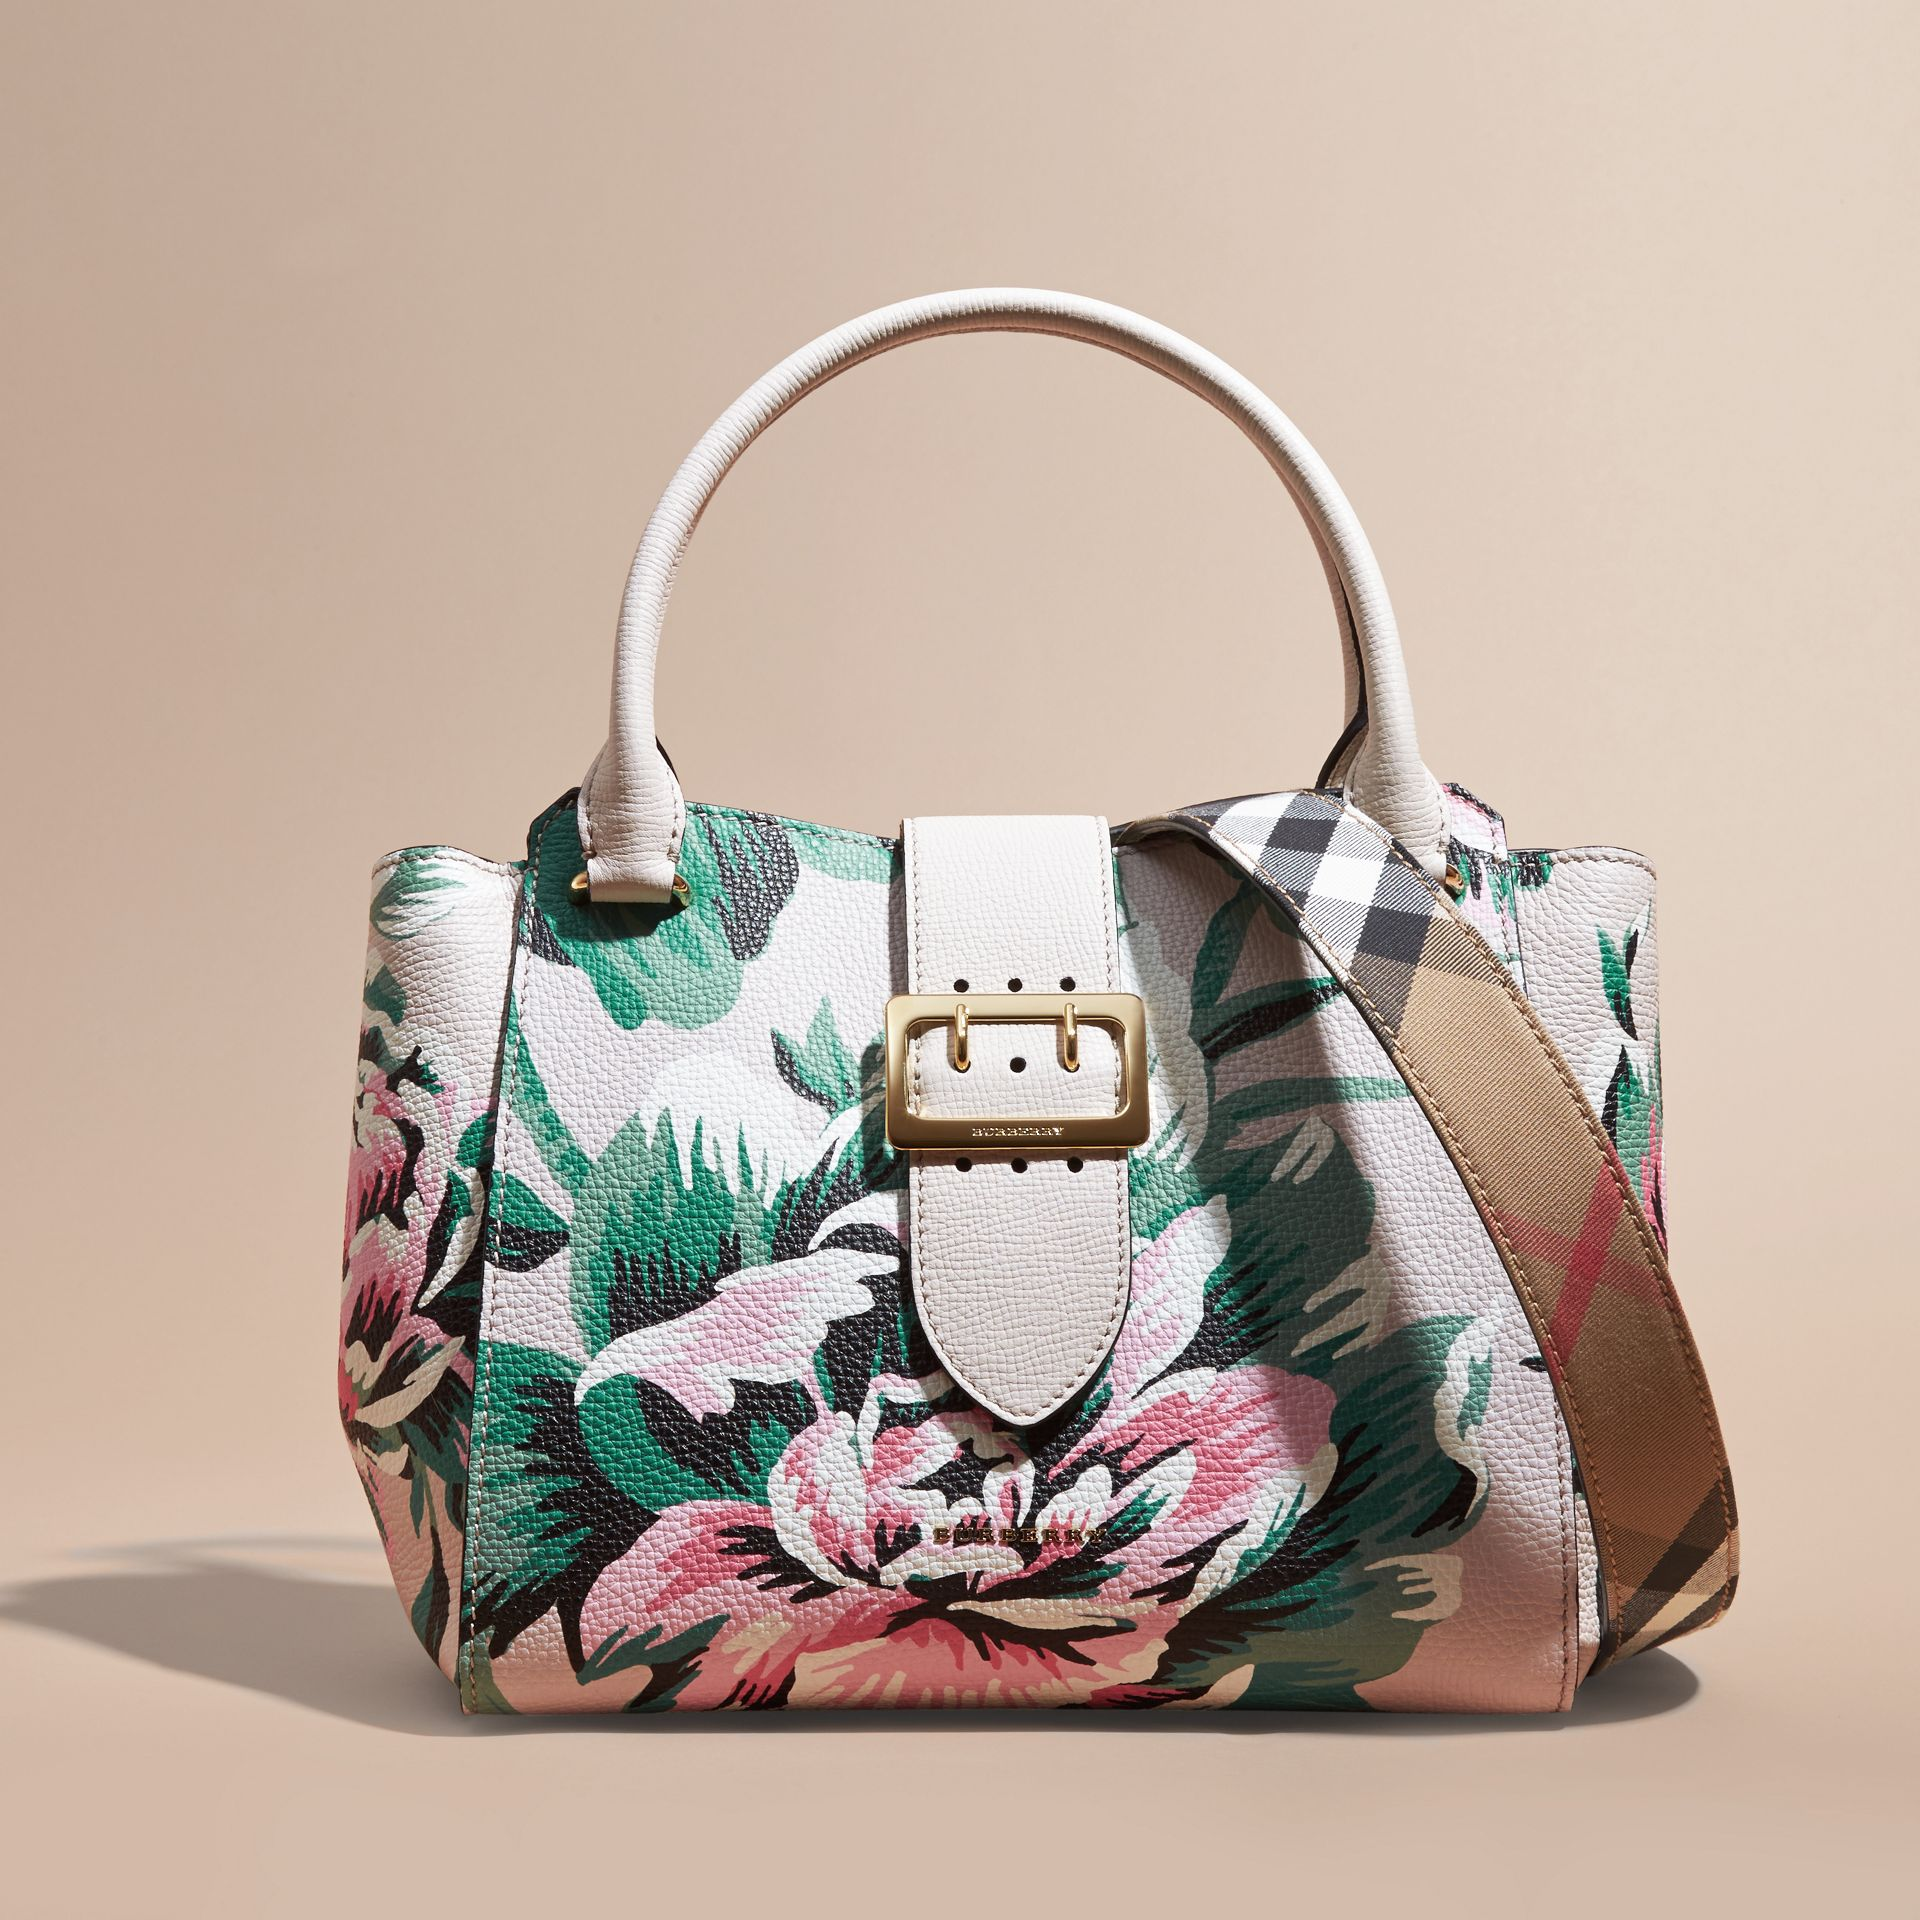 Natural/emerald green The Medium Buckle Tote in Peony Rose Print Leather Natural/emerald Green - gallery image 9